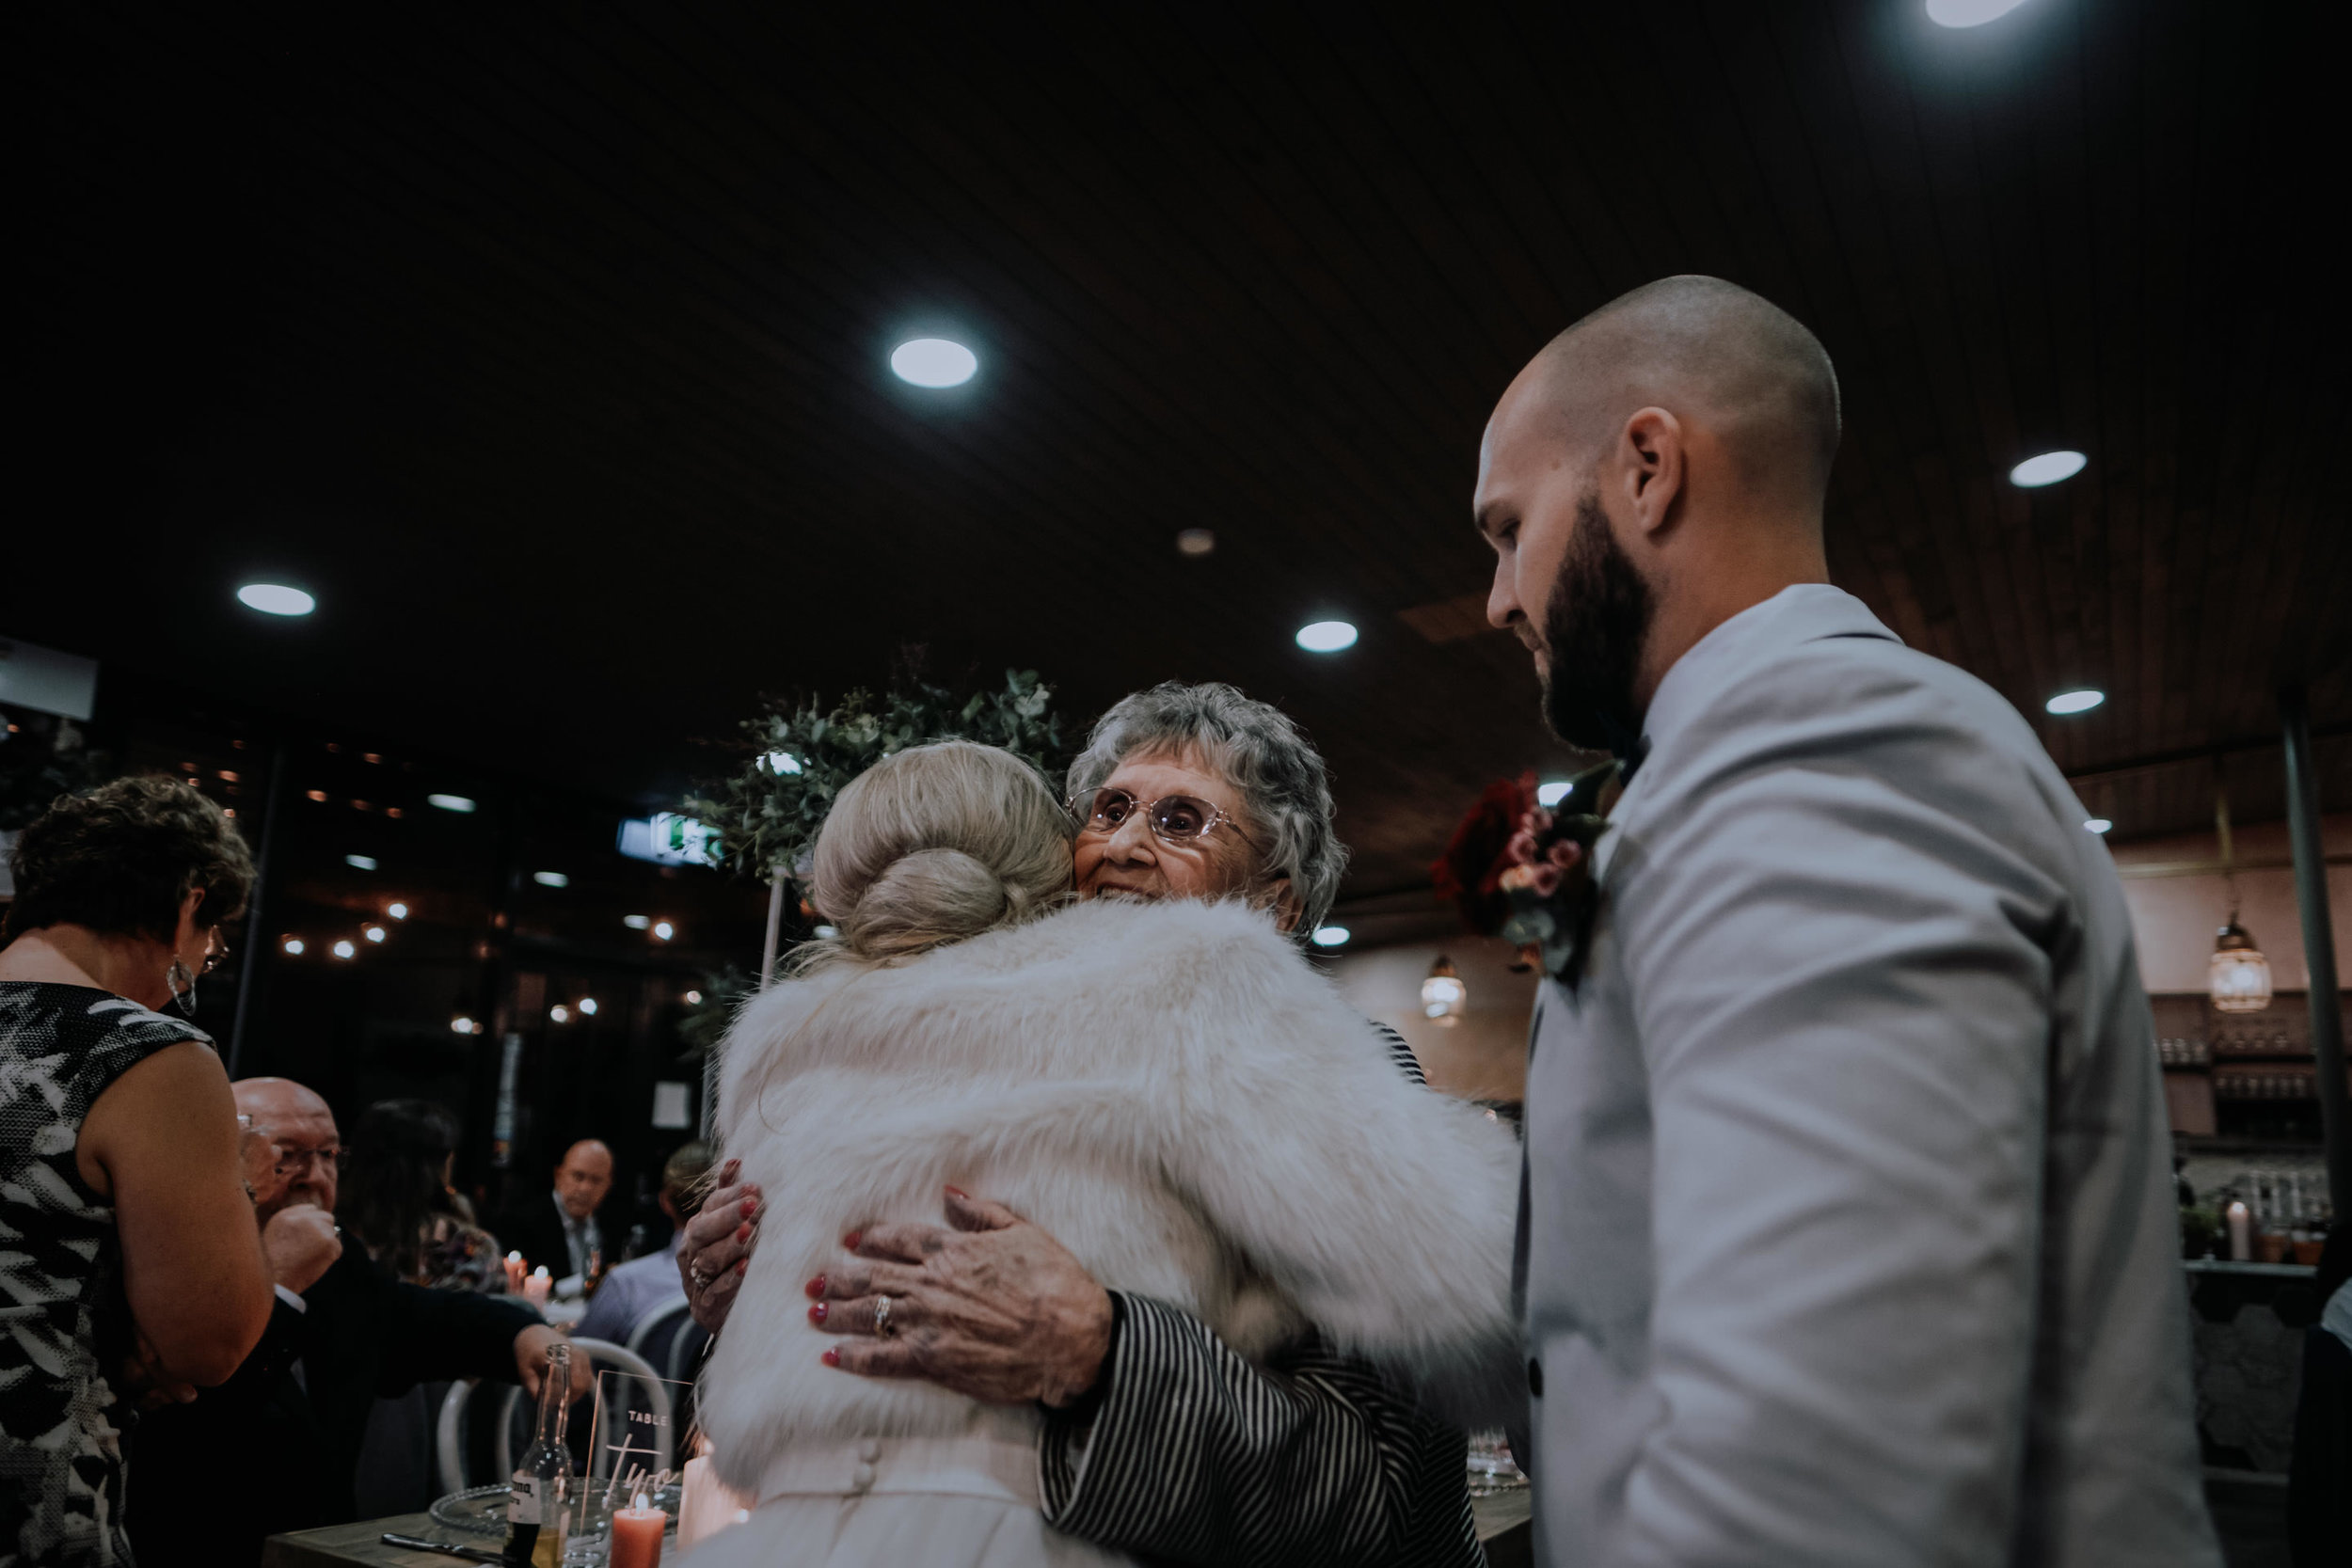 An emotional reunion with a bride and grandma at the wedding reception